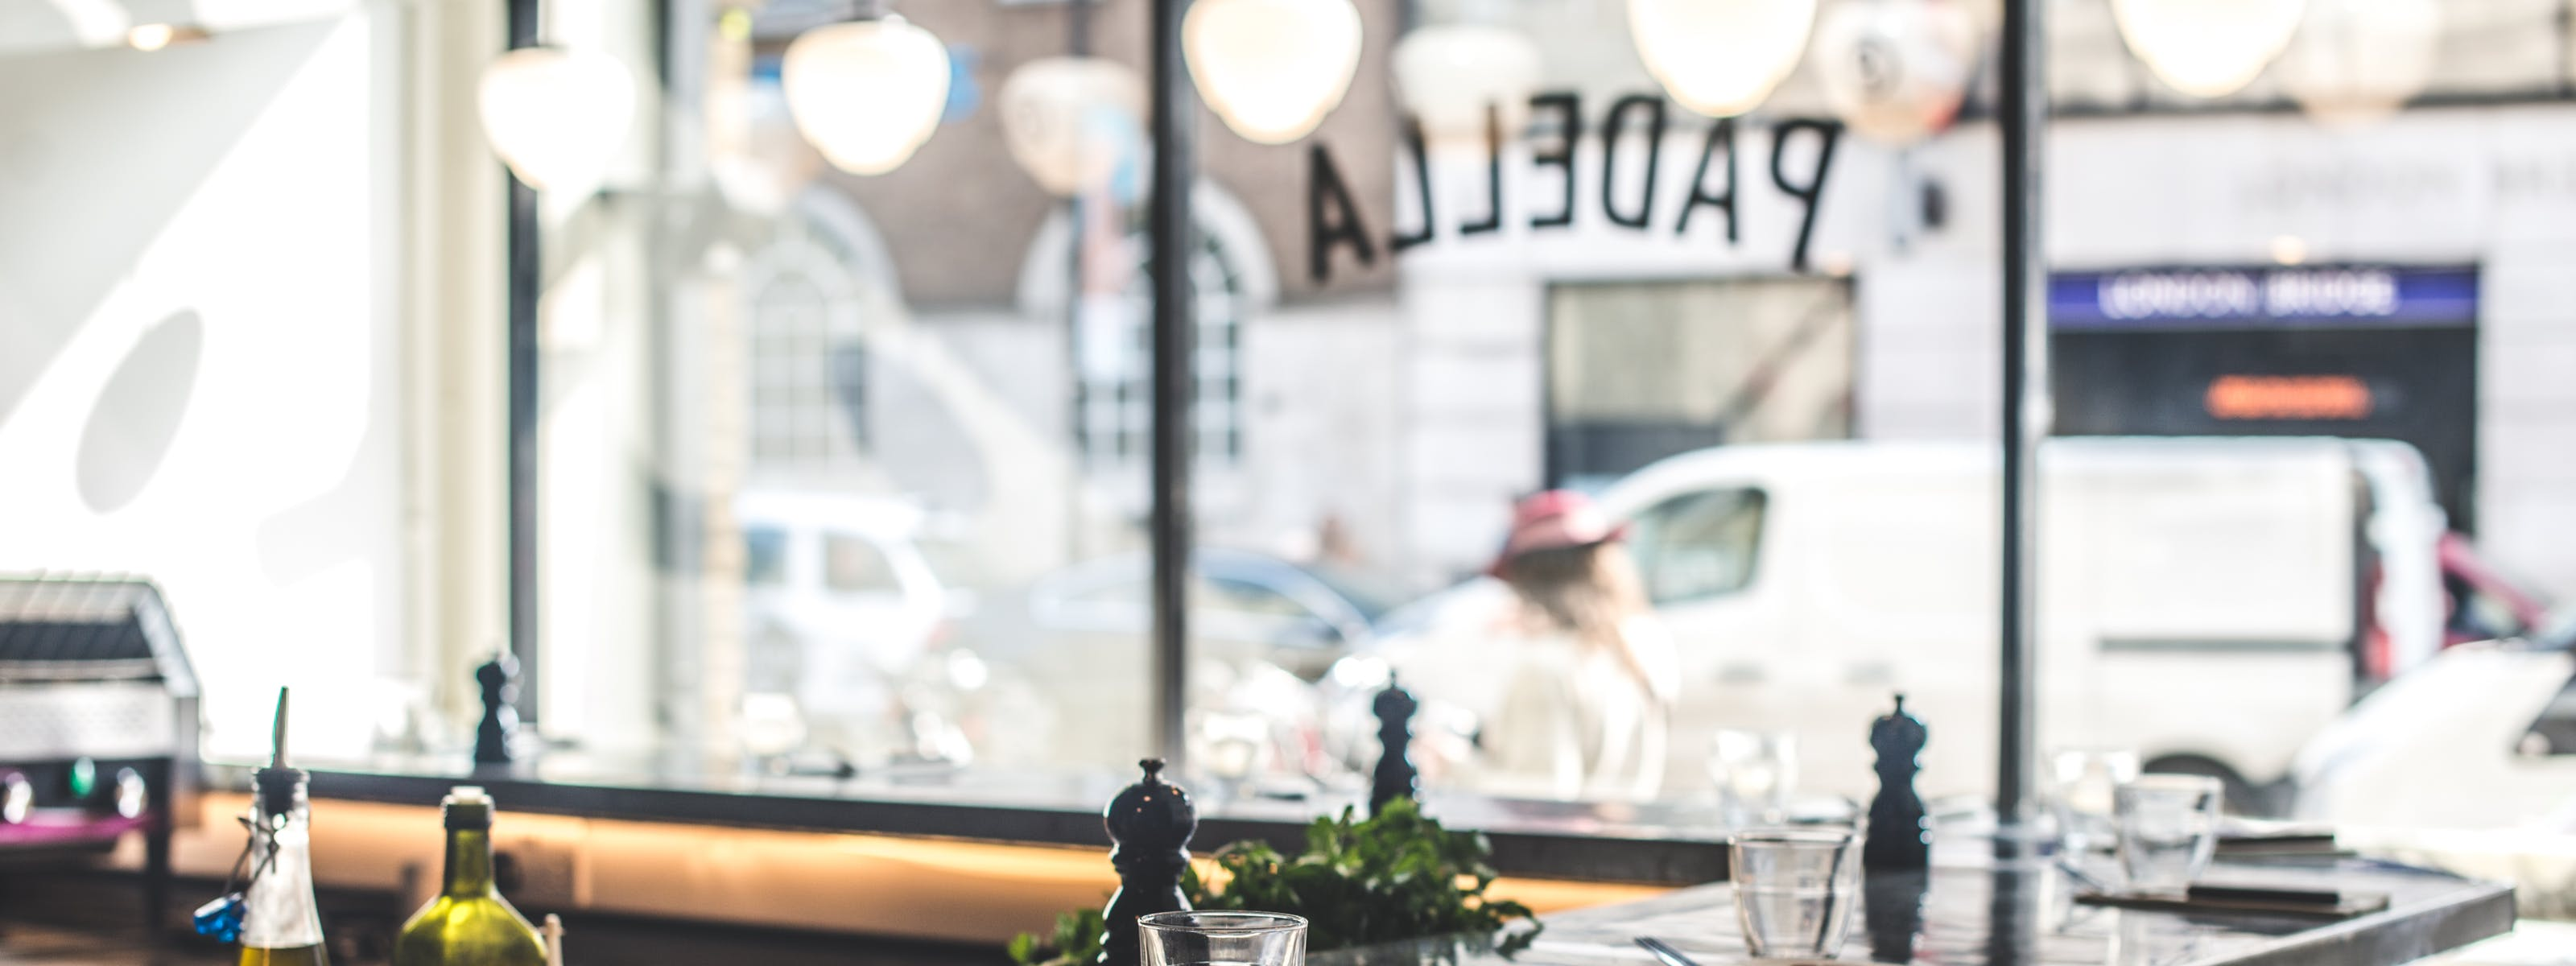 Five Pasta Restaurants In London Taking Part In The 'Eat Out To Help Out' Scheme - London - The Infatuation